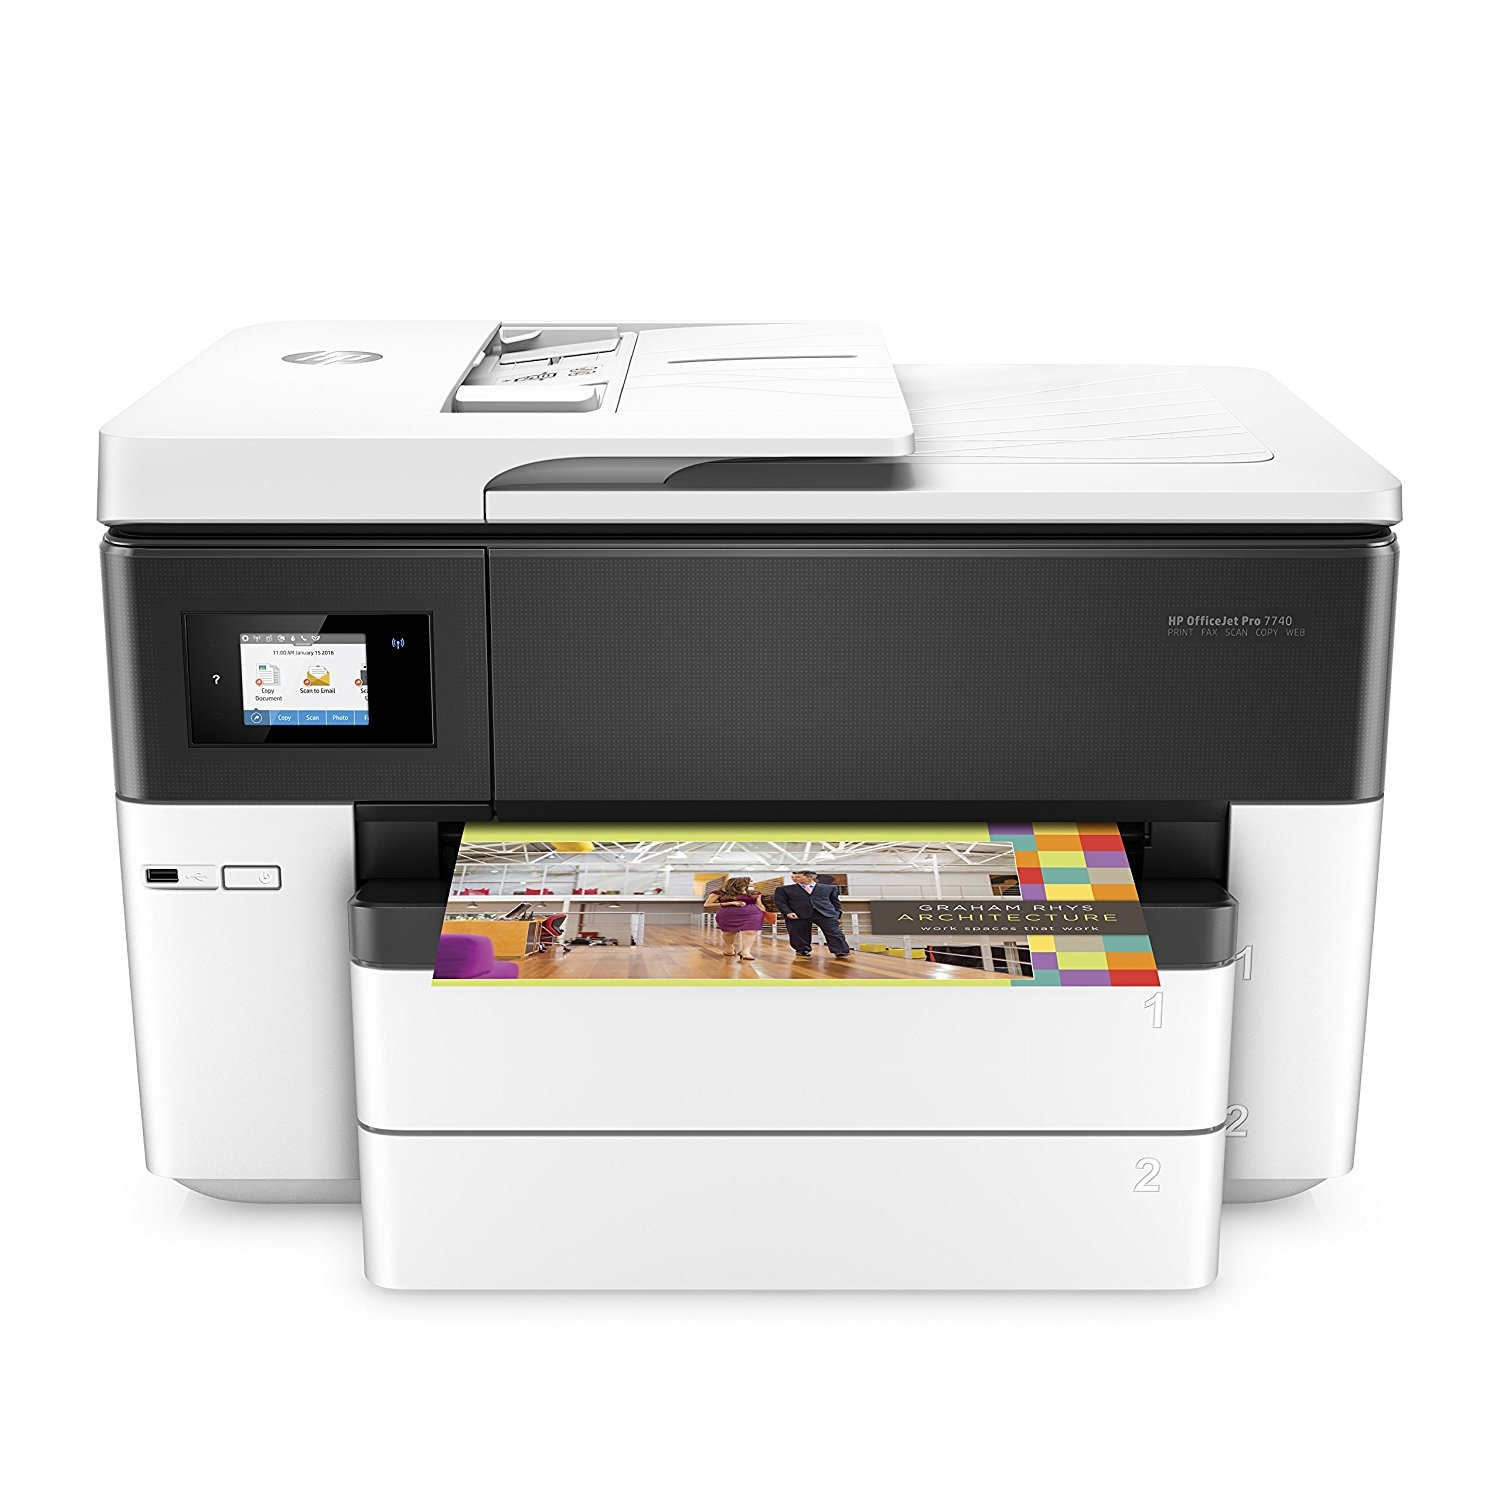 HP OfficeJet Pro 7740 WF AiO Printer (G5J38A)